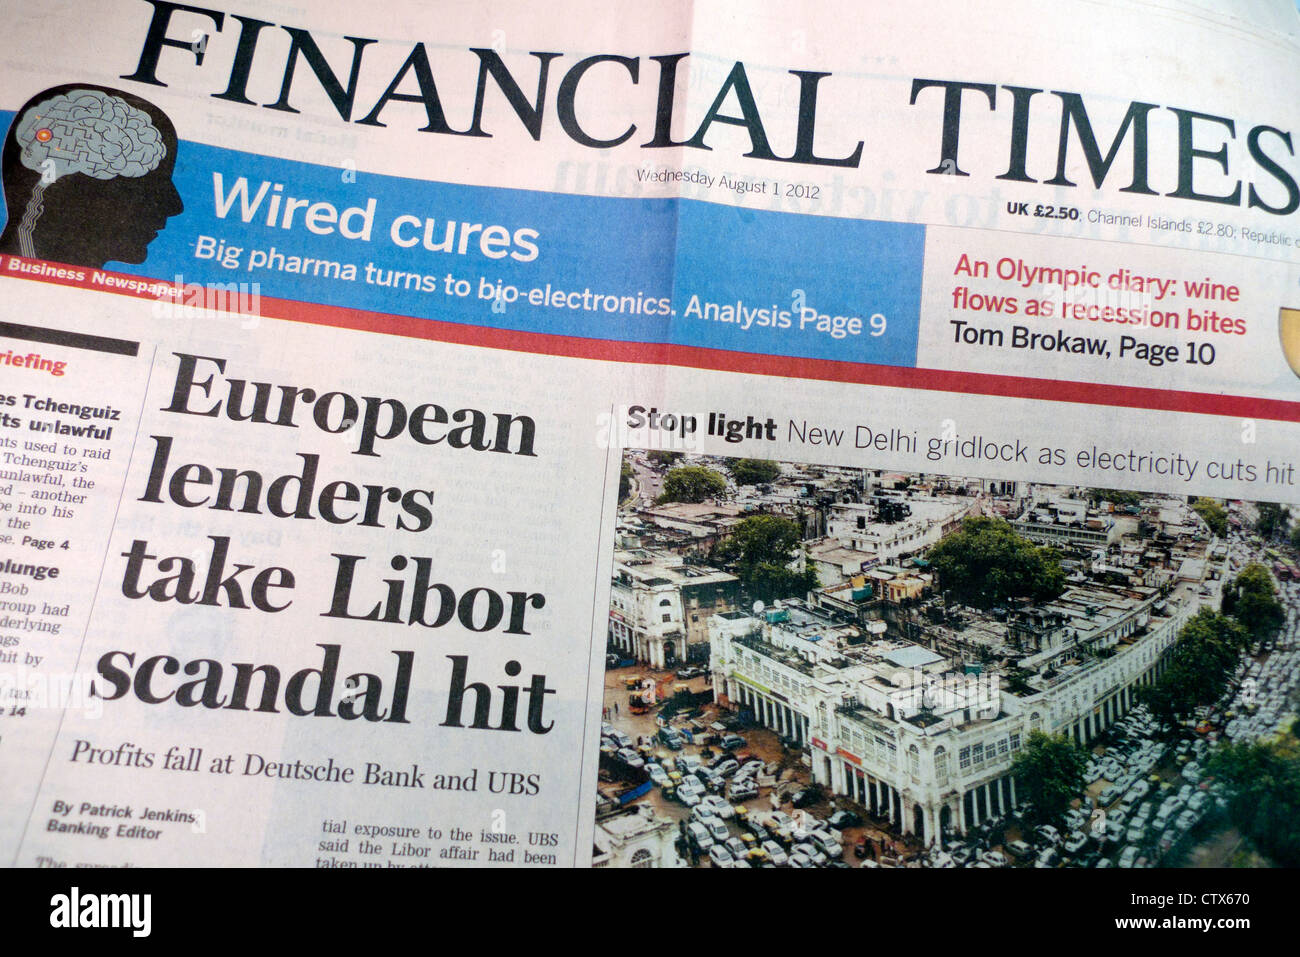 Libor scandal headlines The Financial Times newspaper London August 2012 - Stock Image